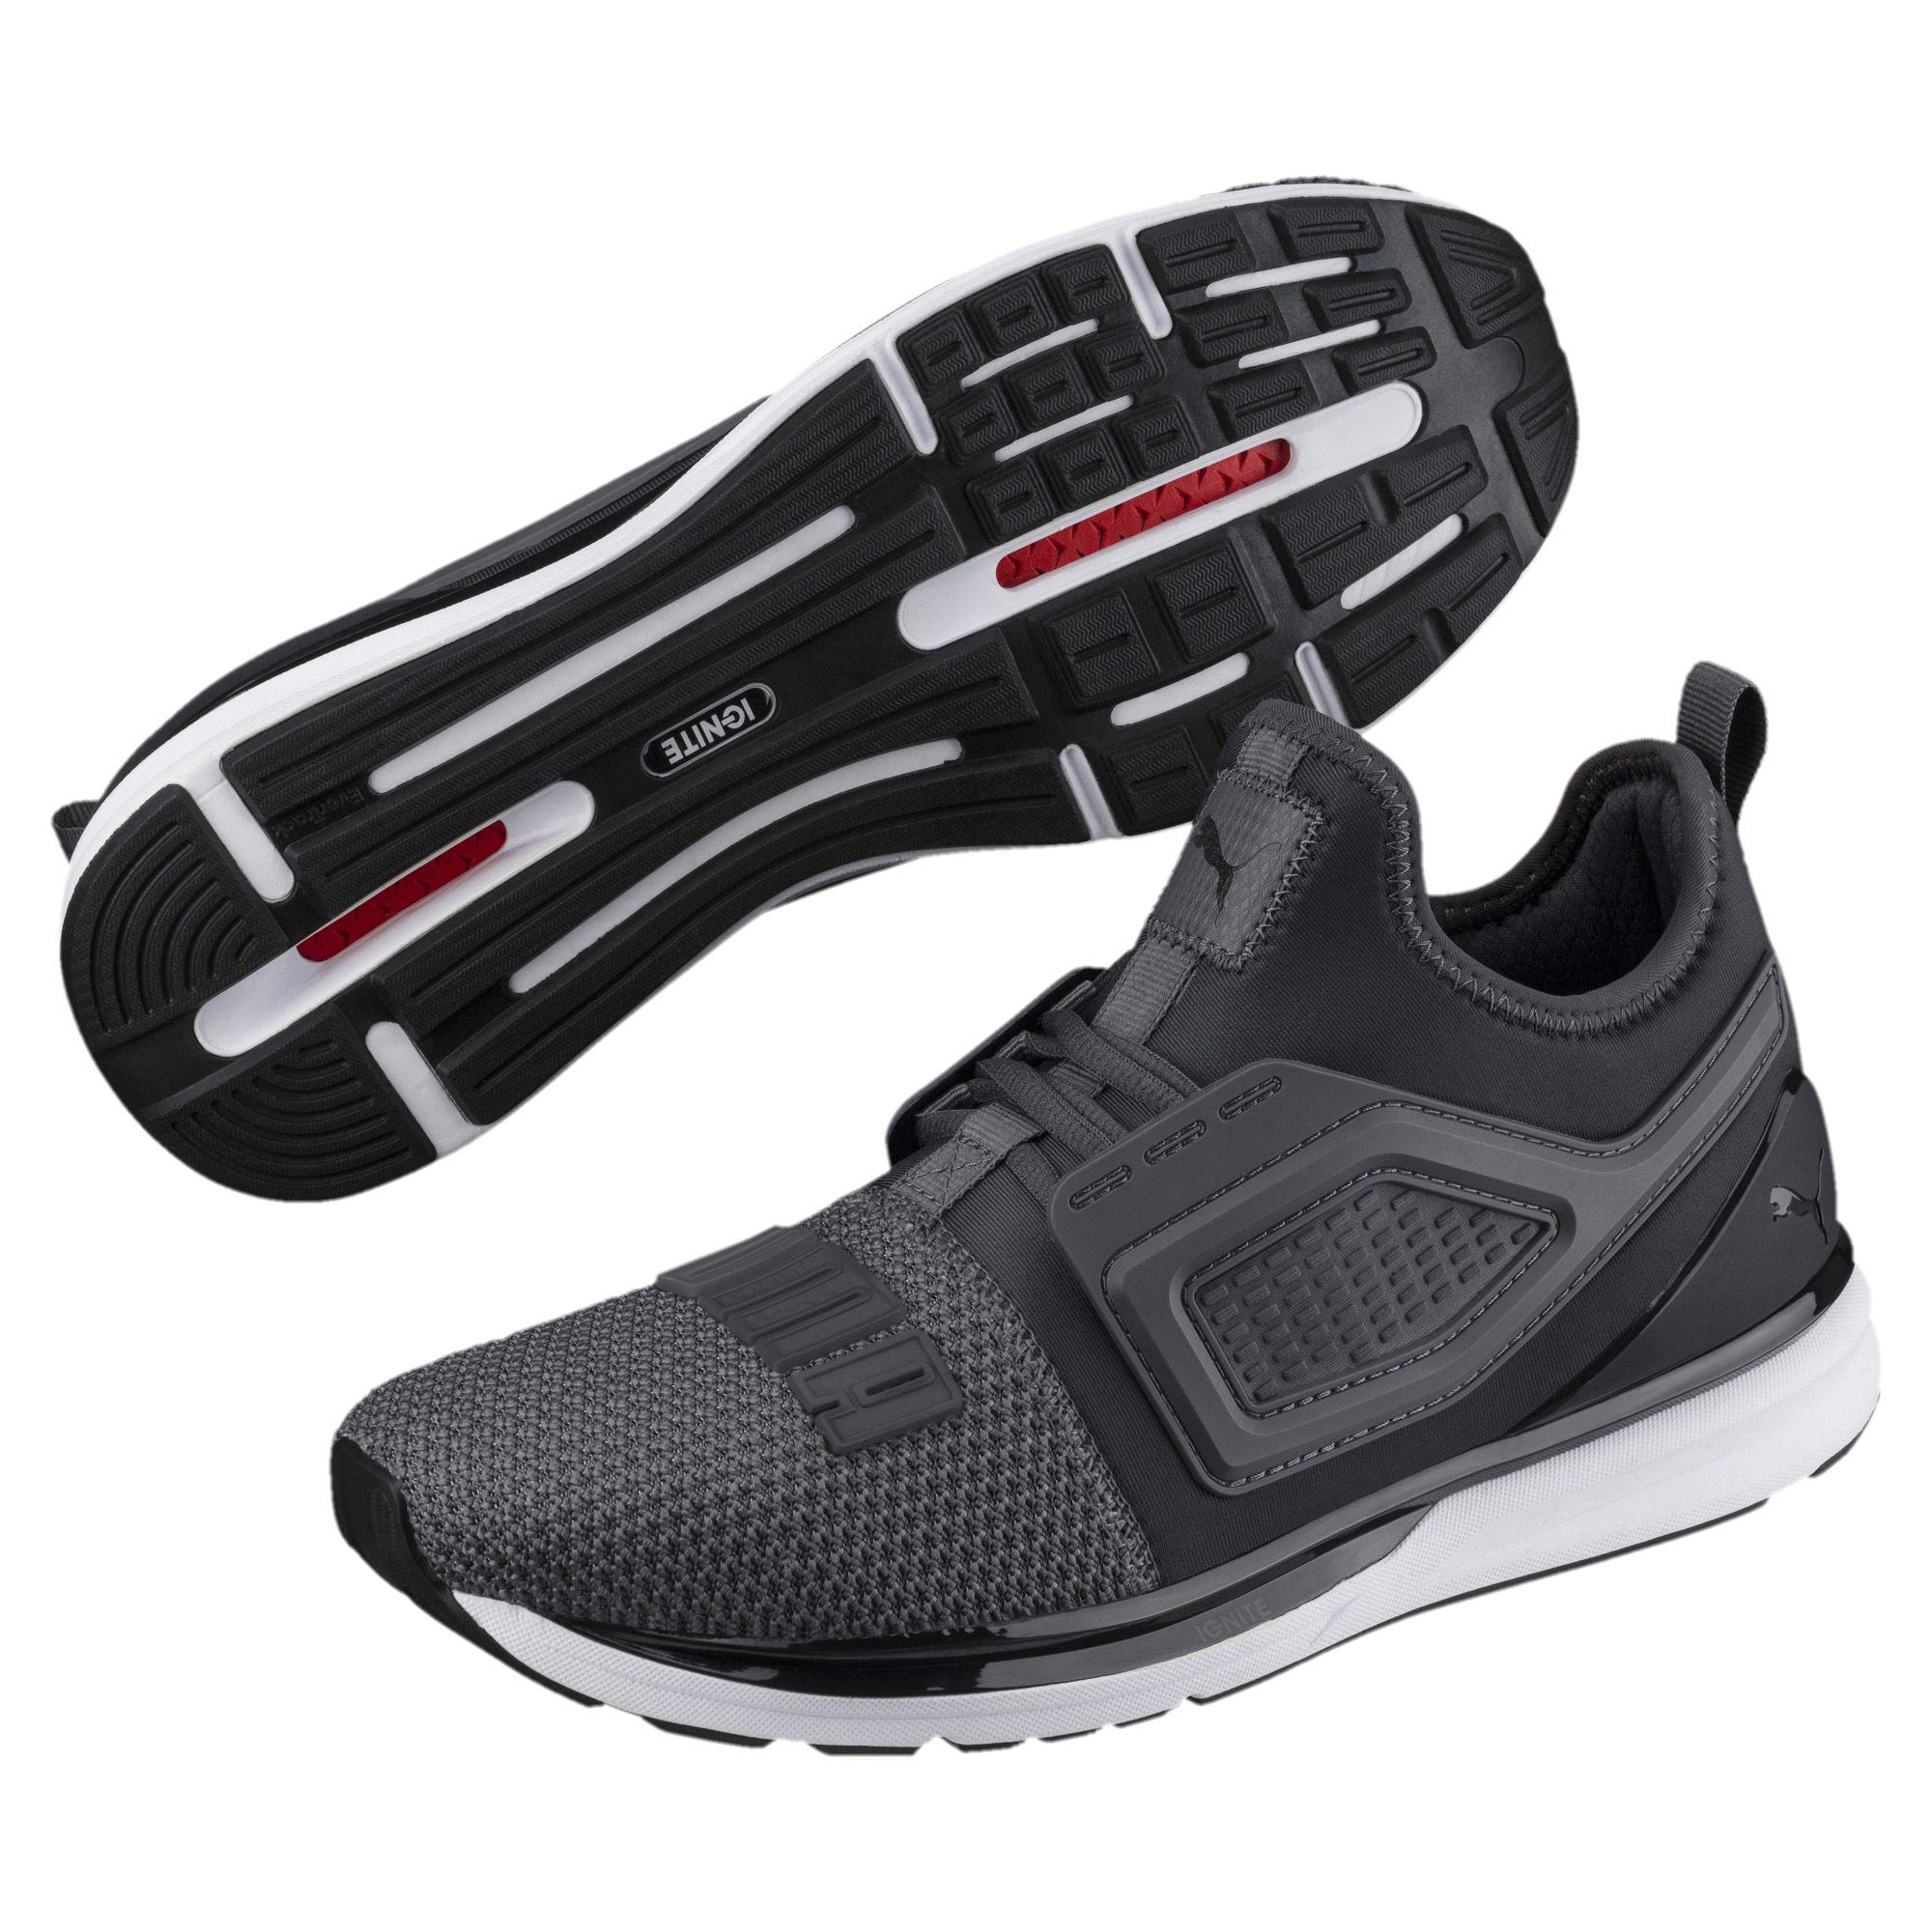 0c3cf0ed66a Lyst - PUMA Ignite Limitless 2 Running Shoes in Black for Men